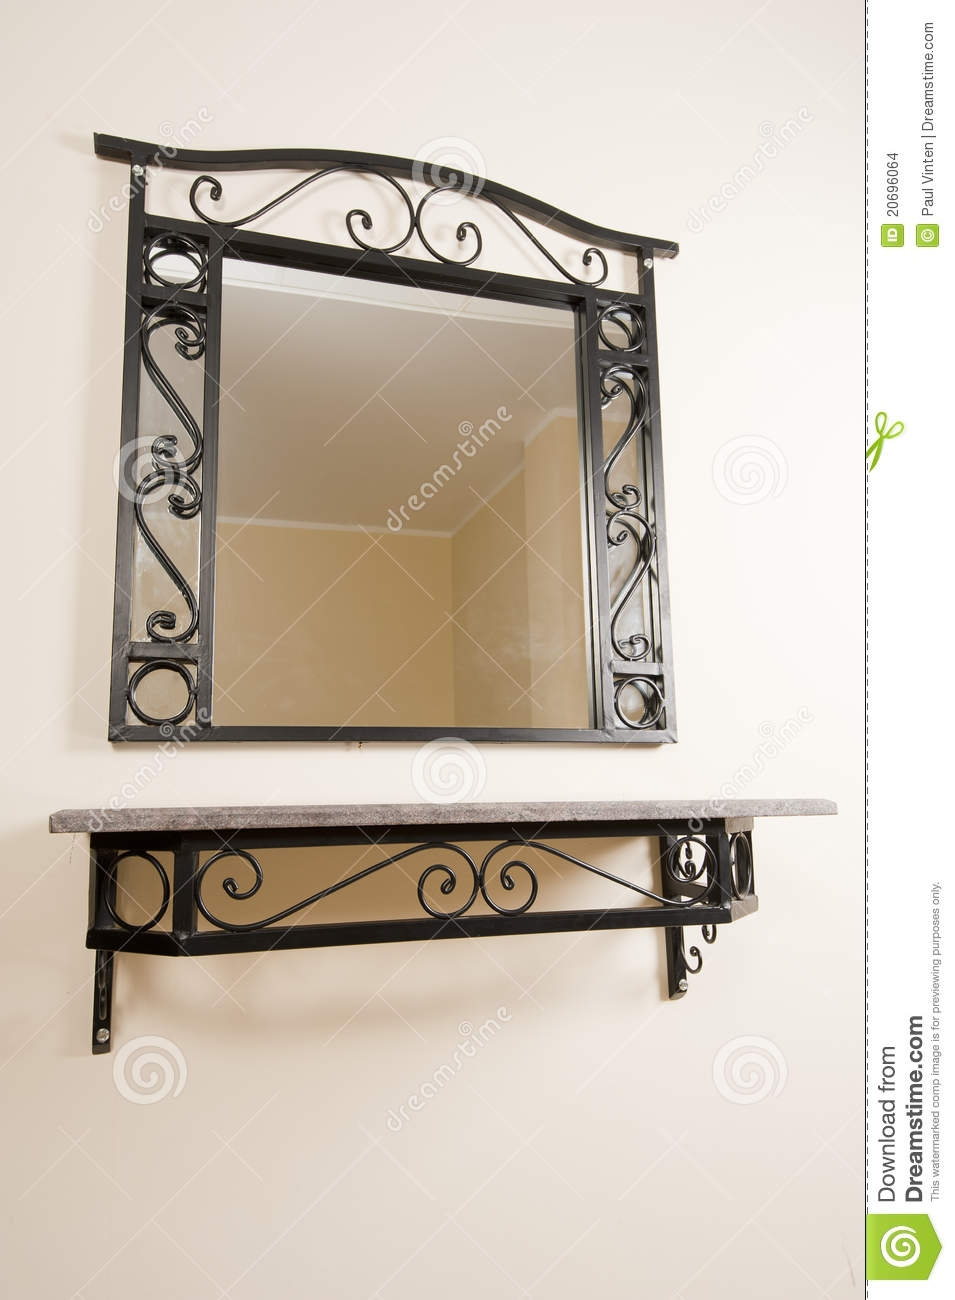 Wall Mirror With Shelf Wall Mirror With Shelf wall mirror with shelf harpsoundsco 955 X 1300